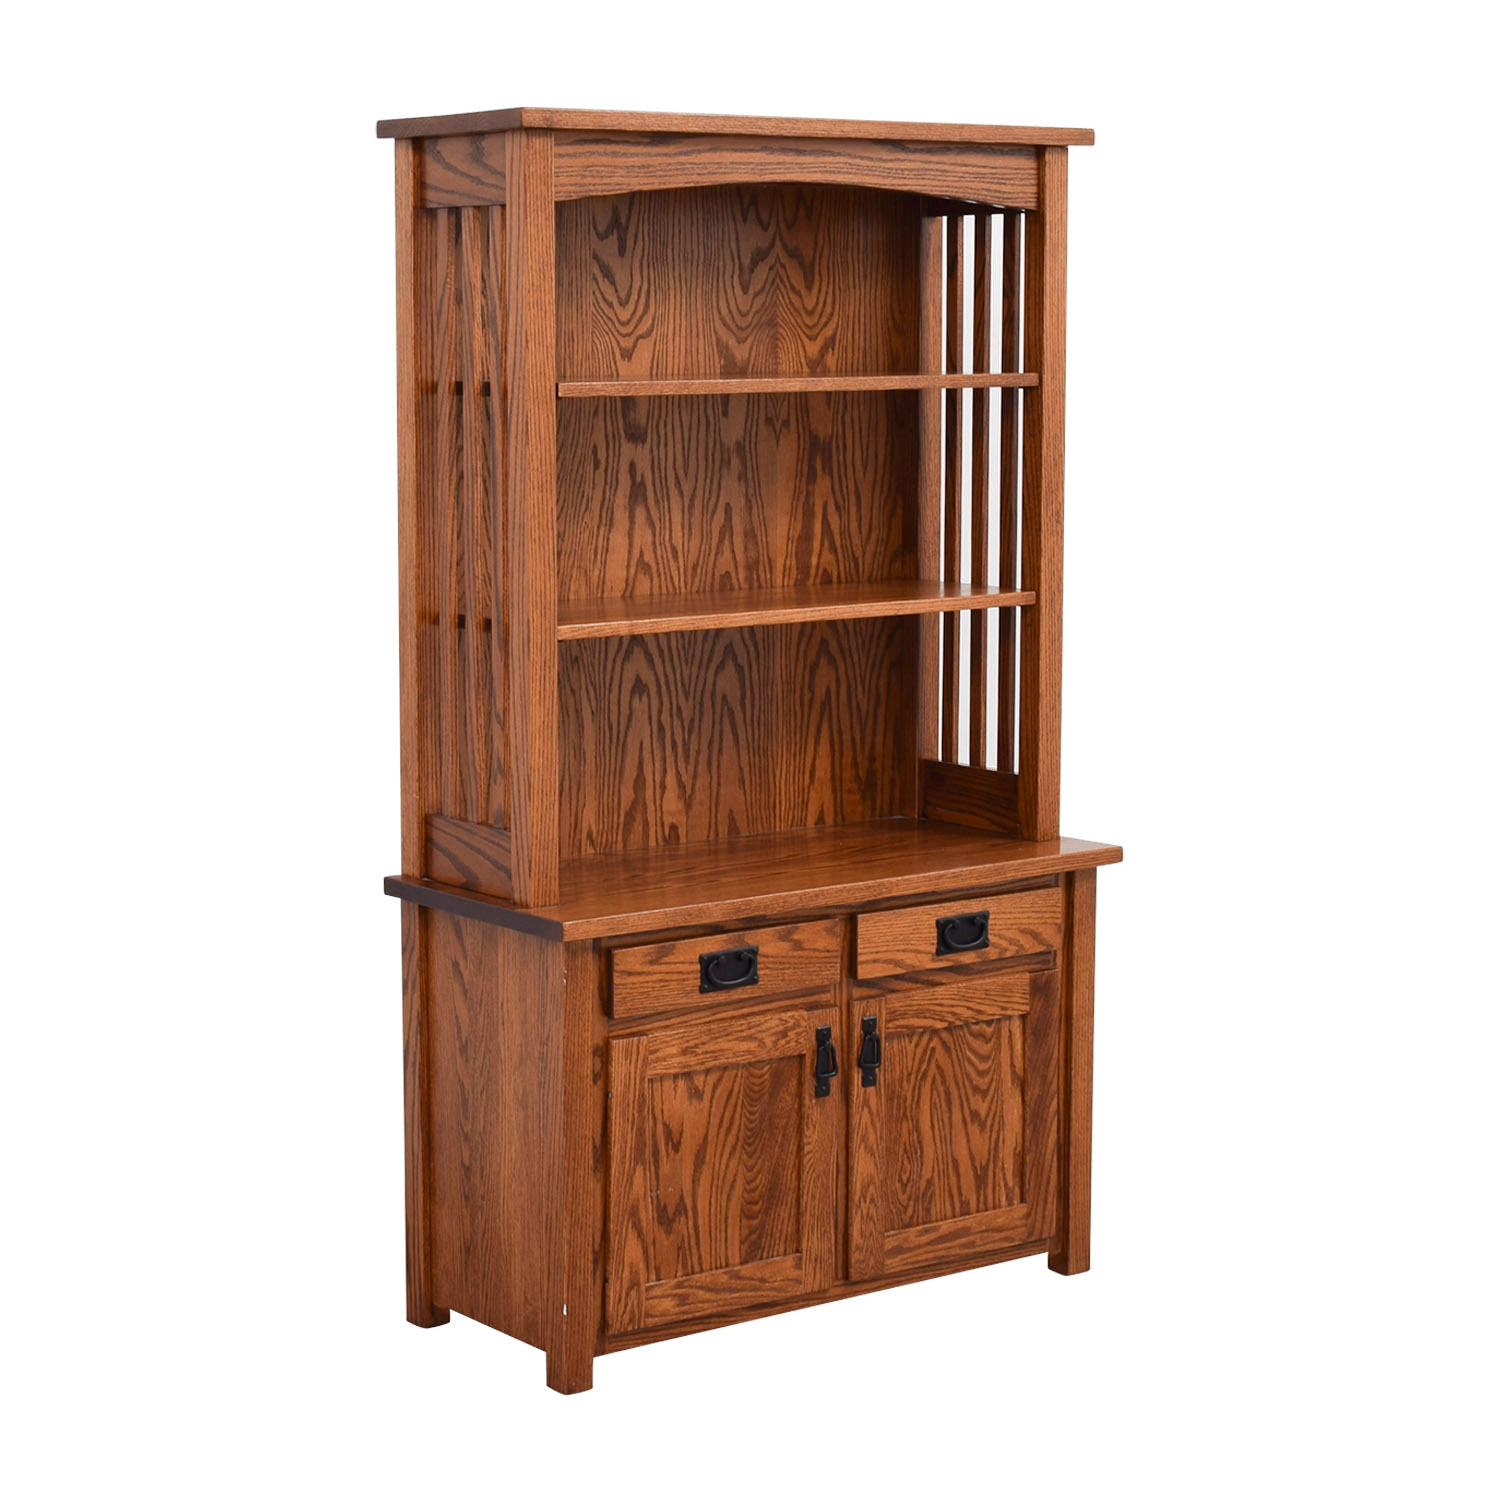 Amish Mission Furniture Amish Mission Hutch price